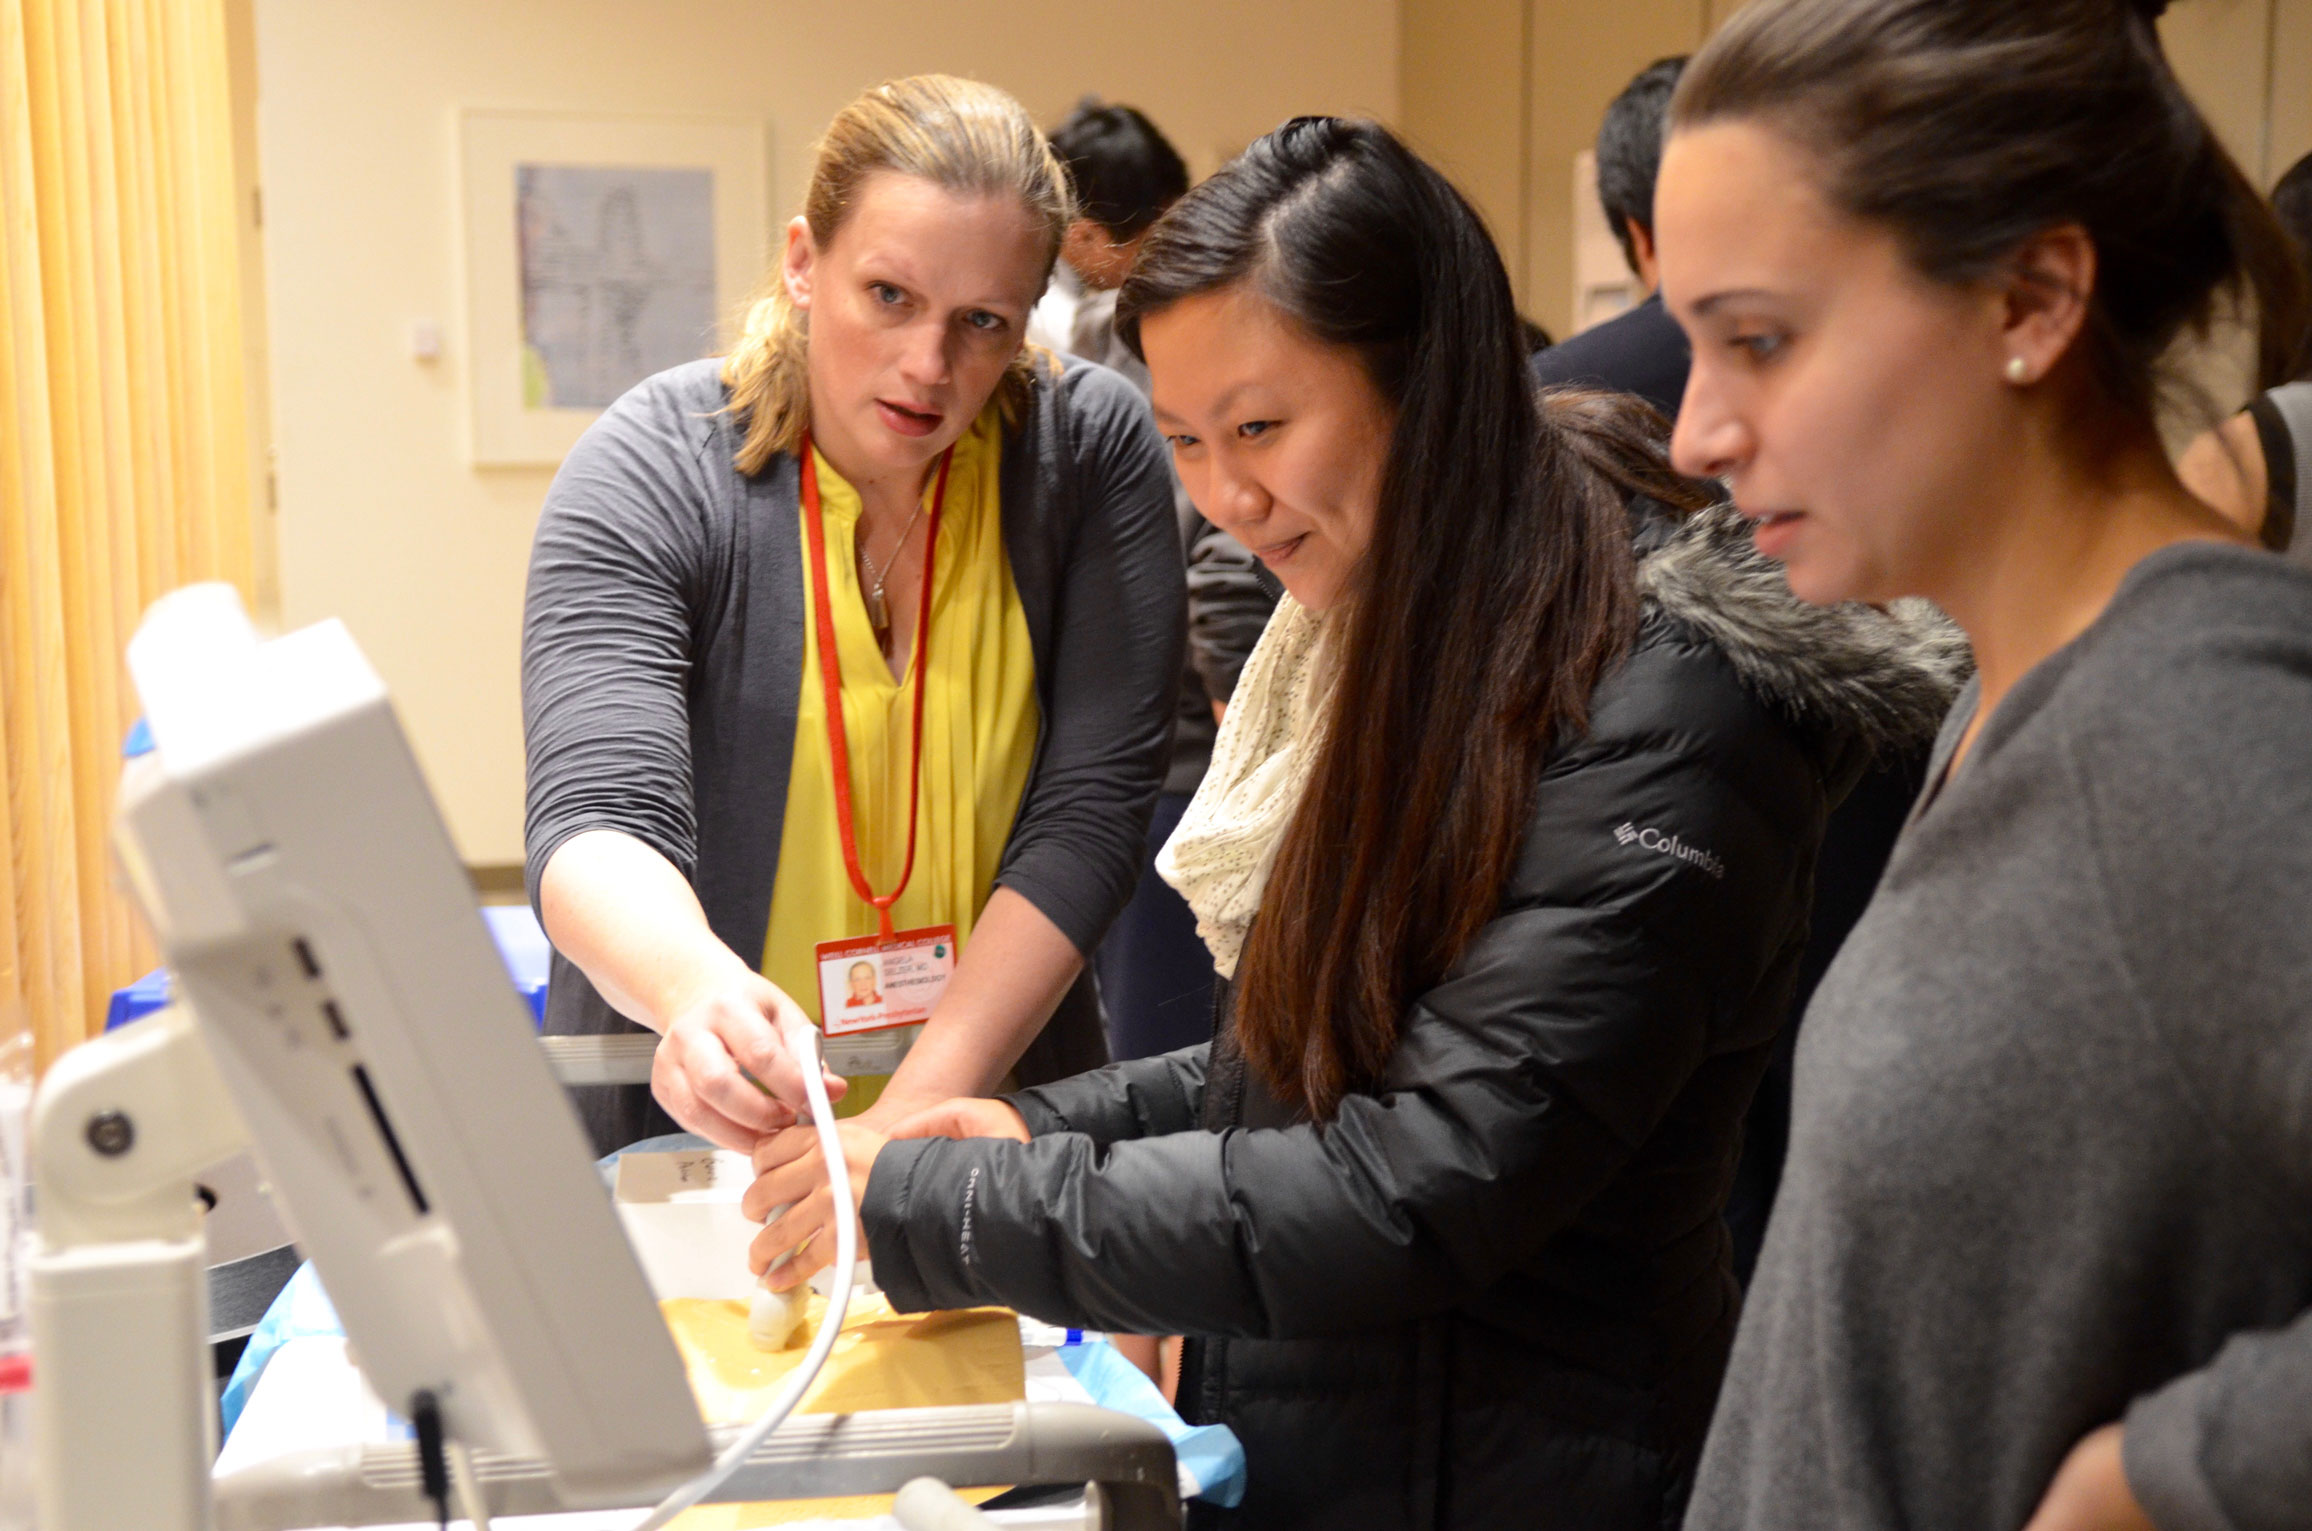 Hands-on Ultrasound Workshop Attracts Medical Students